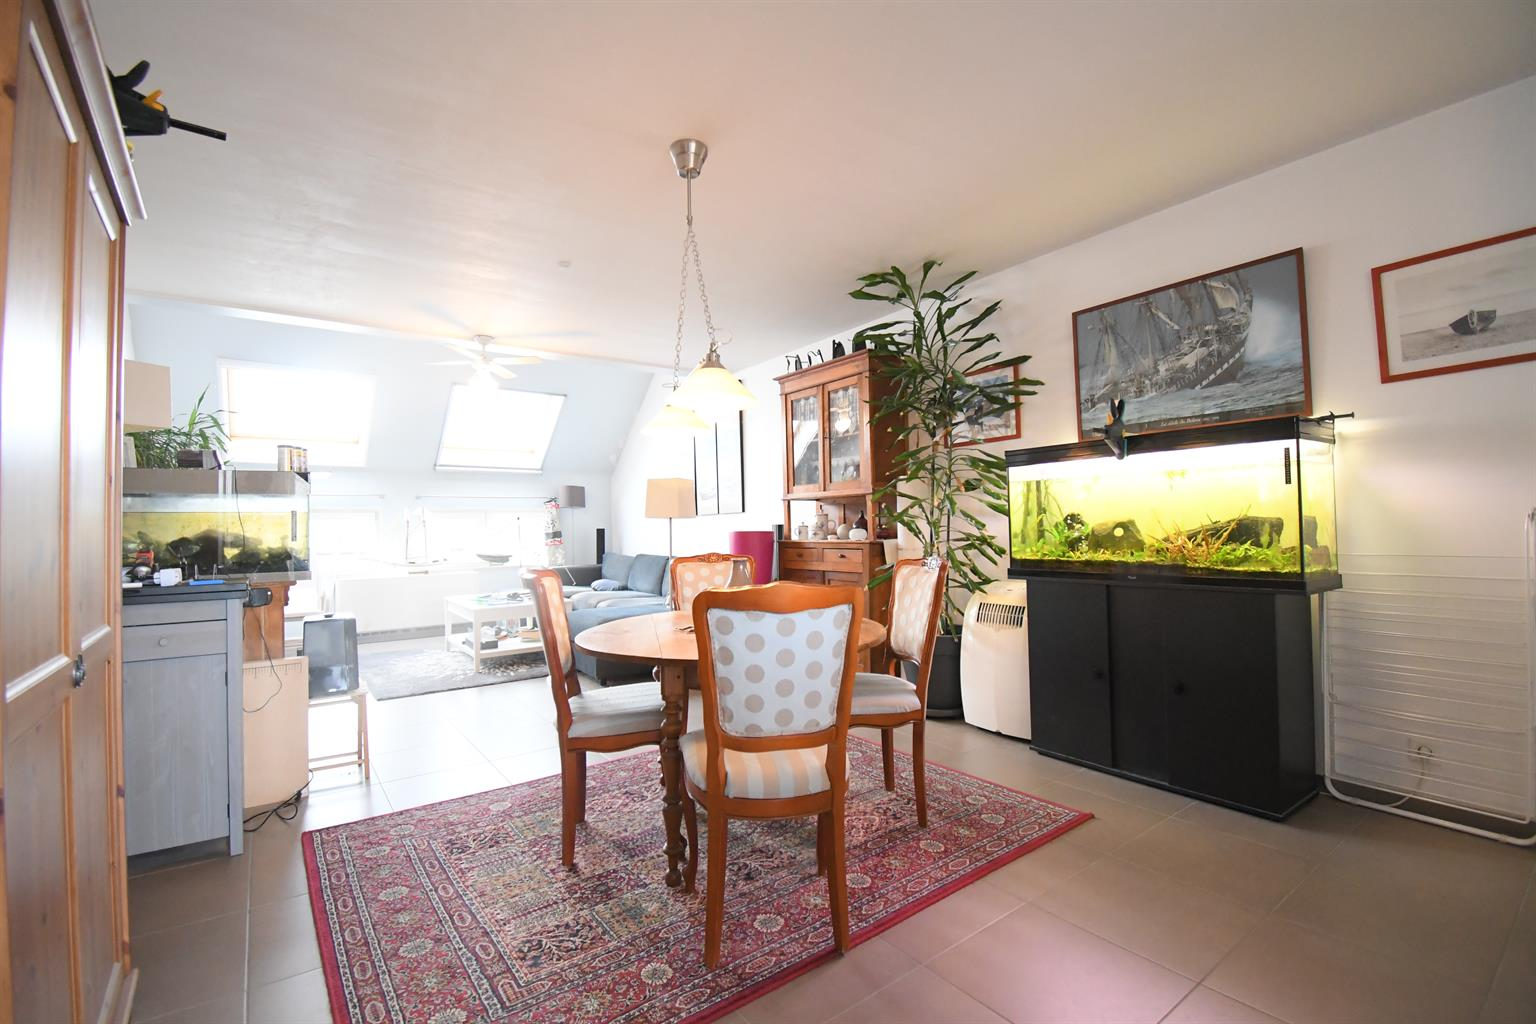 Appartement - Braine-le-Comte - #4308812-1